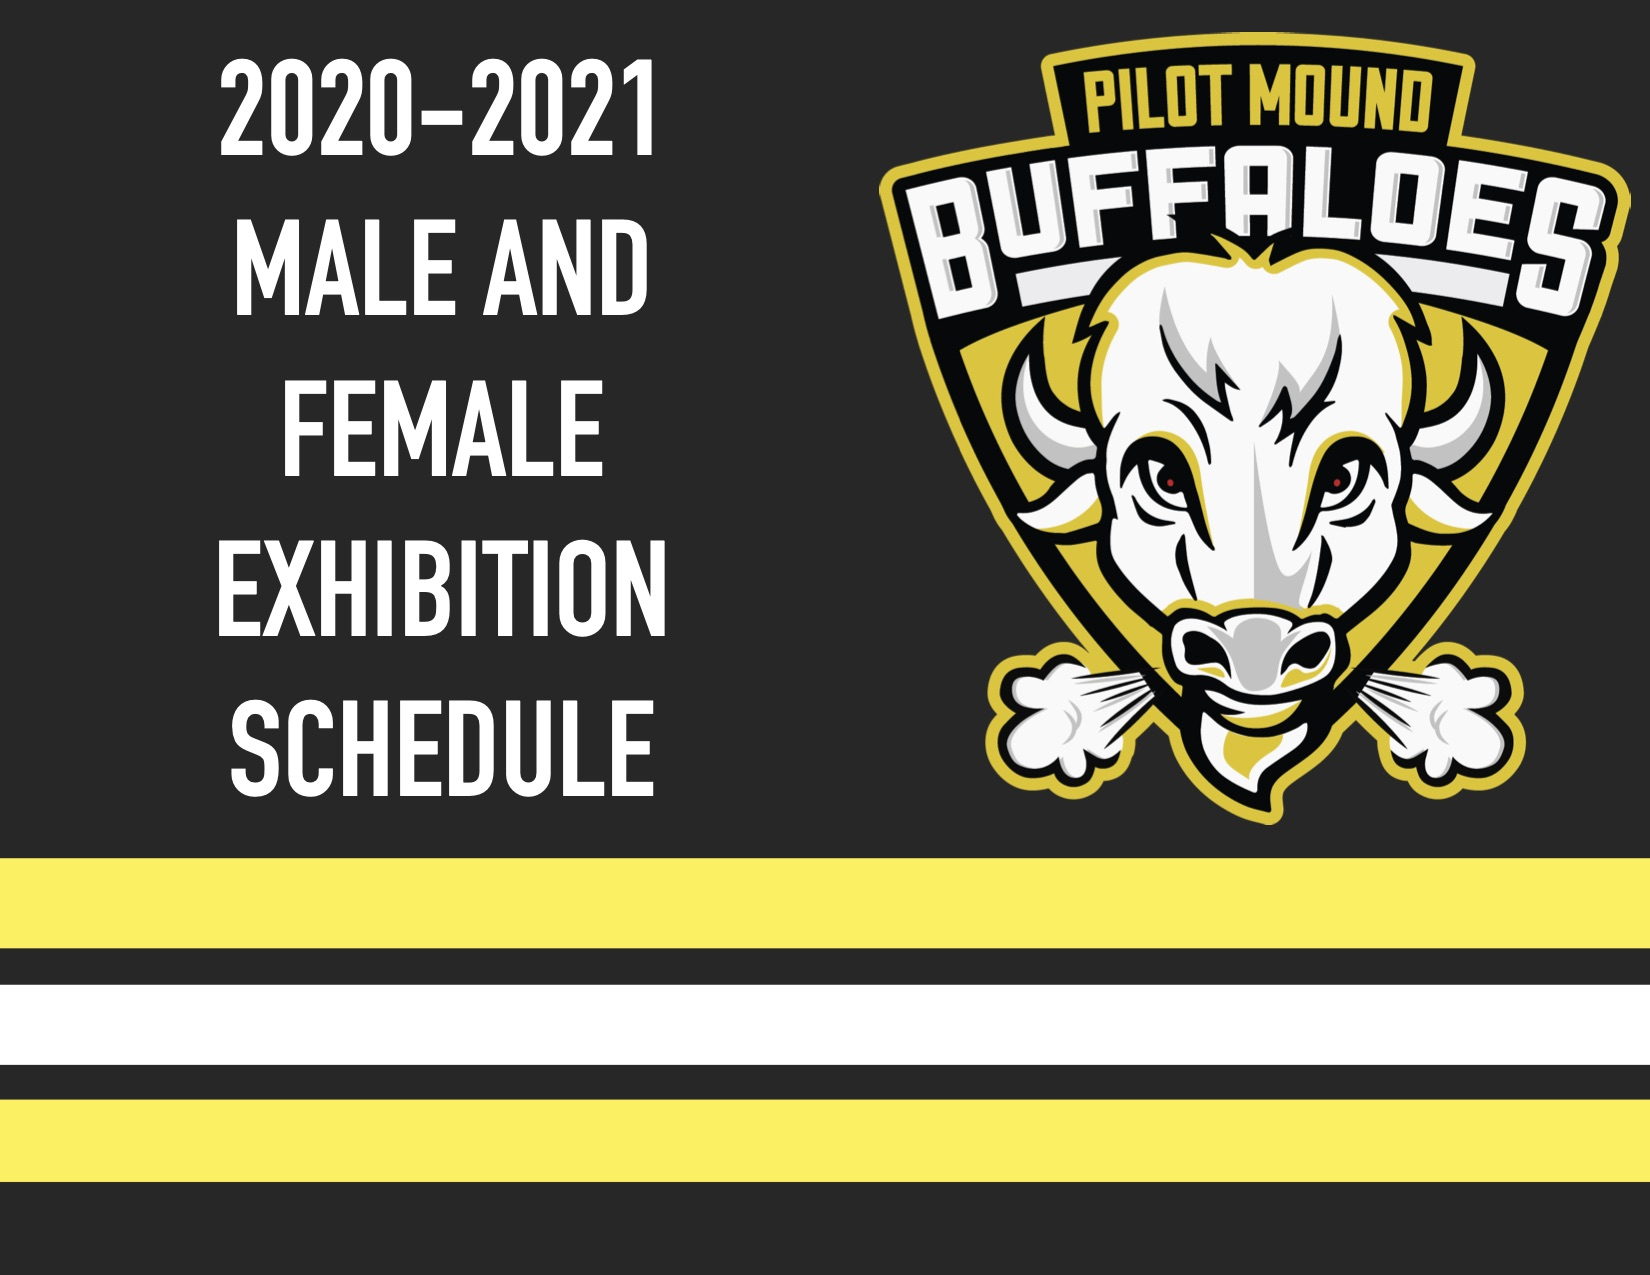 PMHA Announces 2020-21 Exhibition Schedule